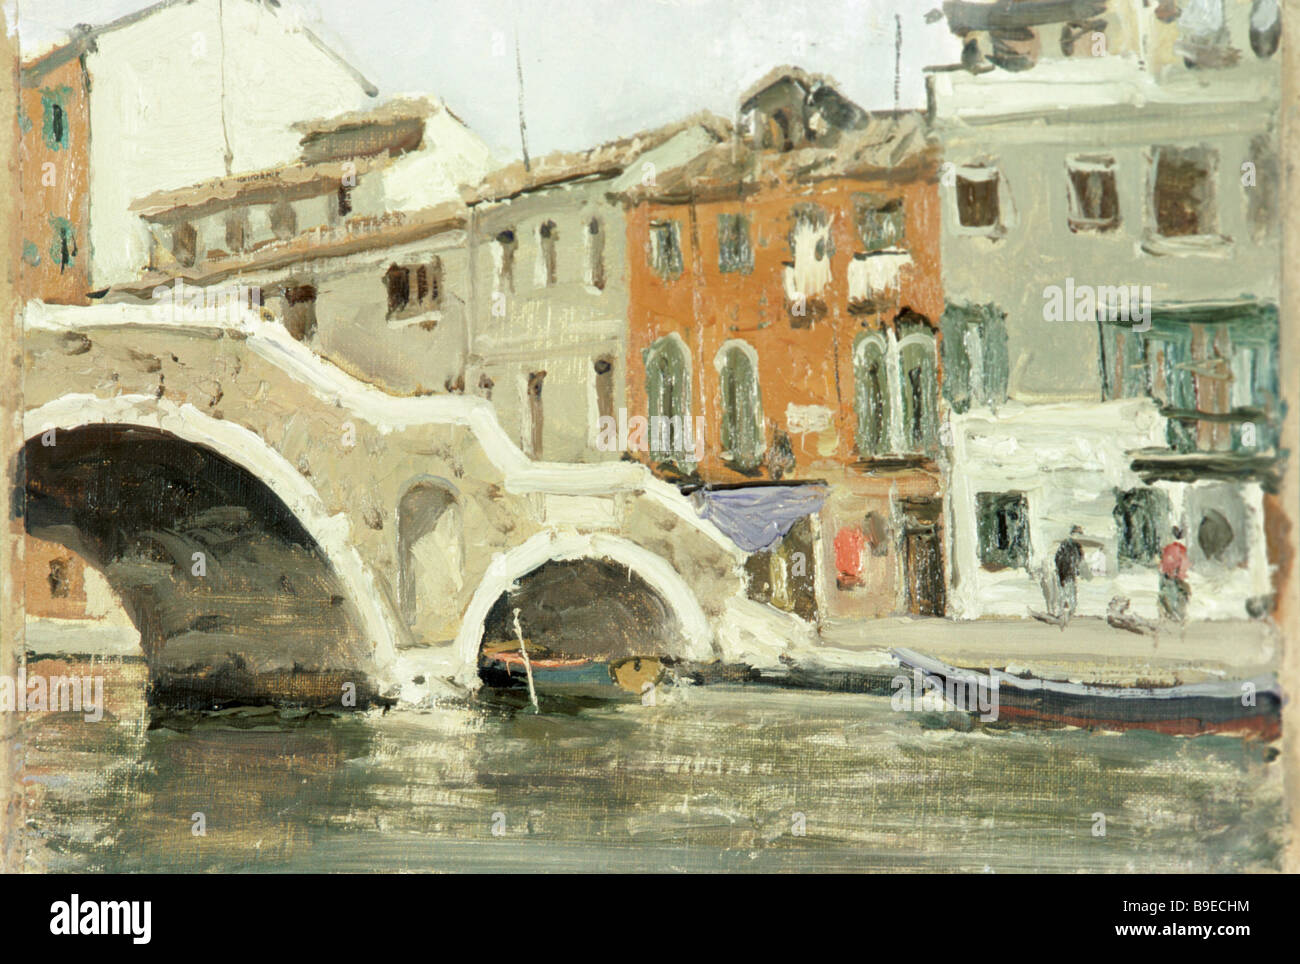 Reproduction of painting Venice Canal by Mikhail Kupriyanov of the Kukryniksy Group Stock Photo